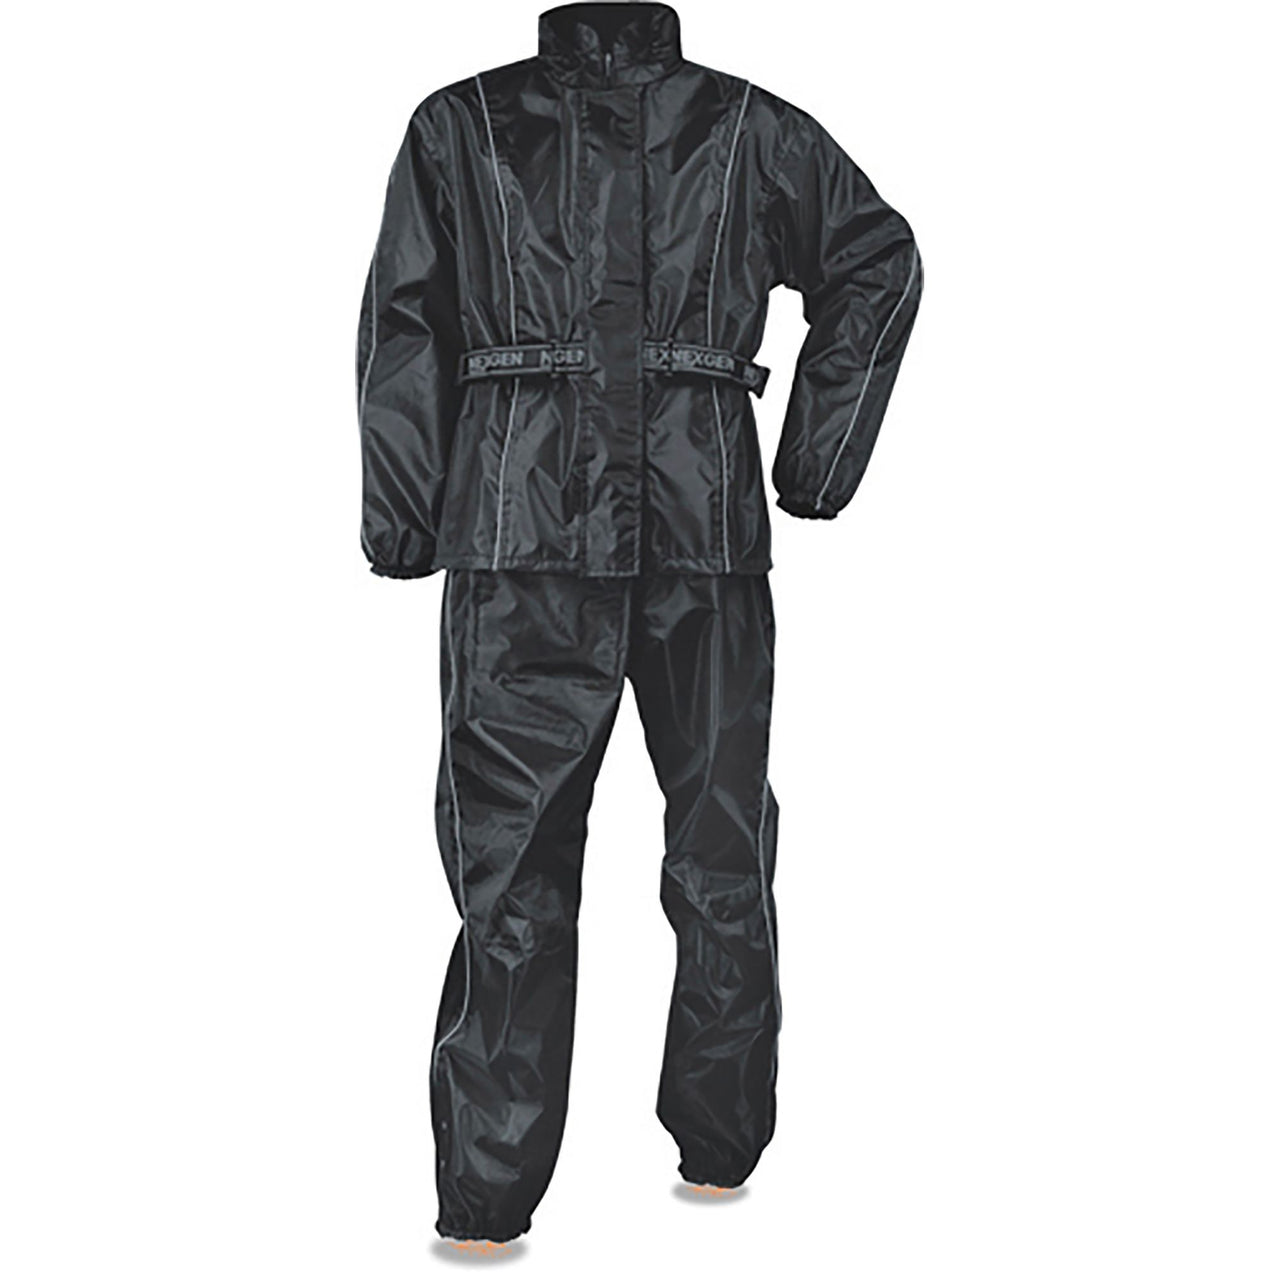 Ladies Black Rain Suit Oxford Nylon Lightweight & Water Resistant - HighwayLeather